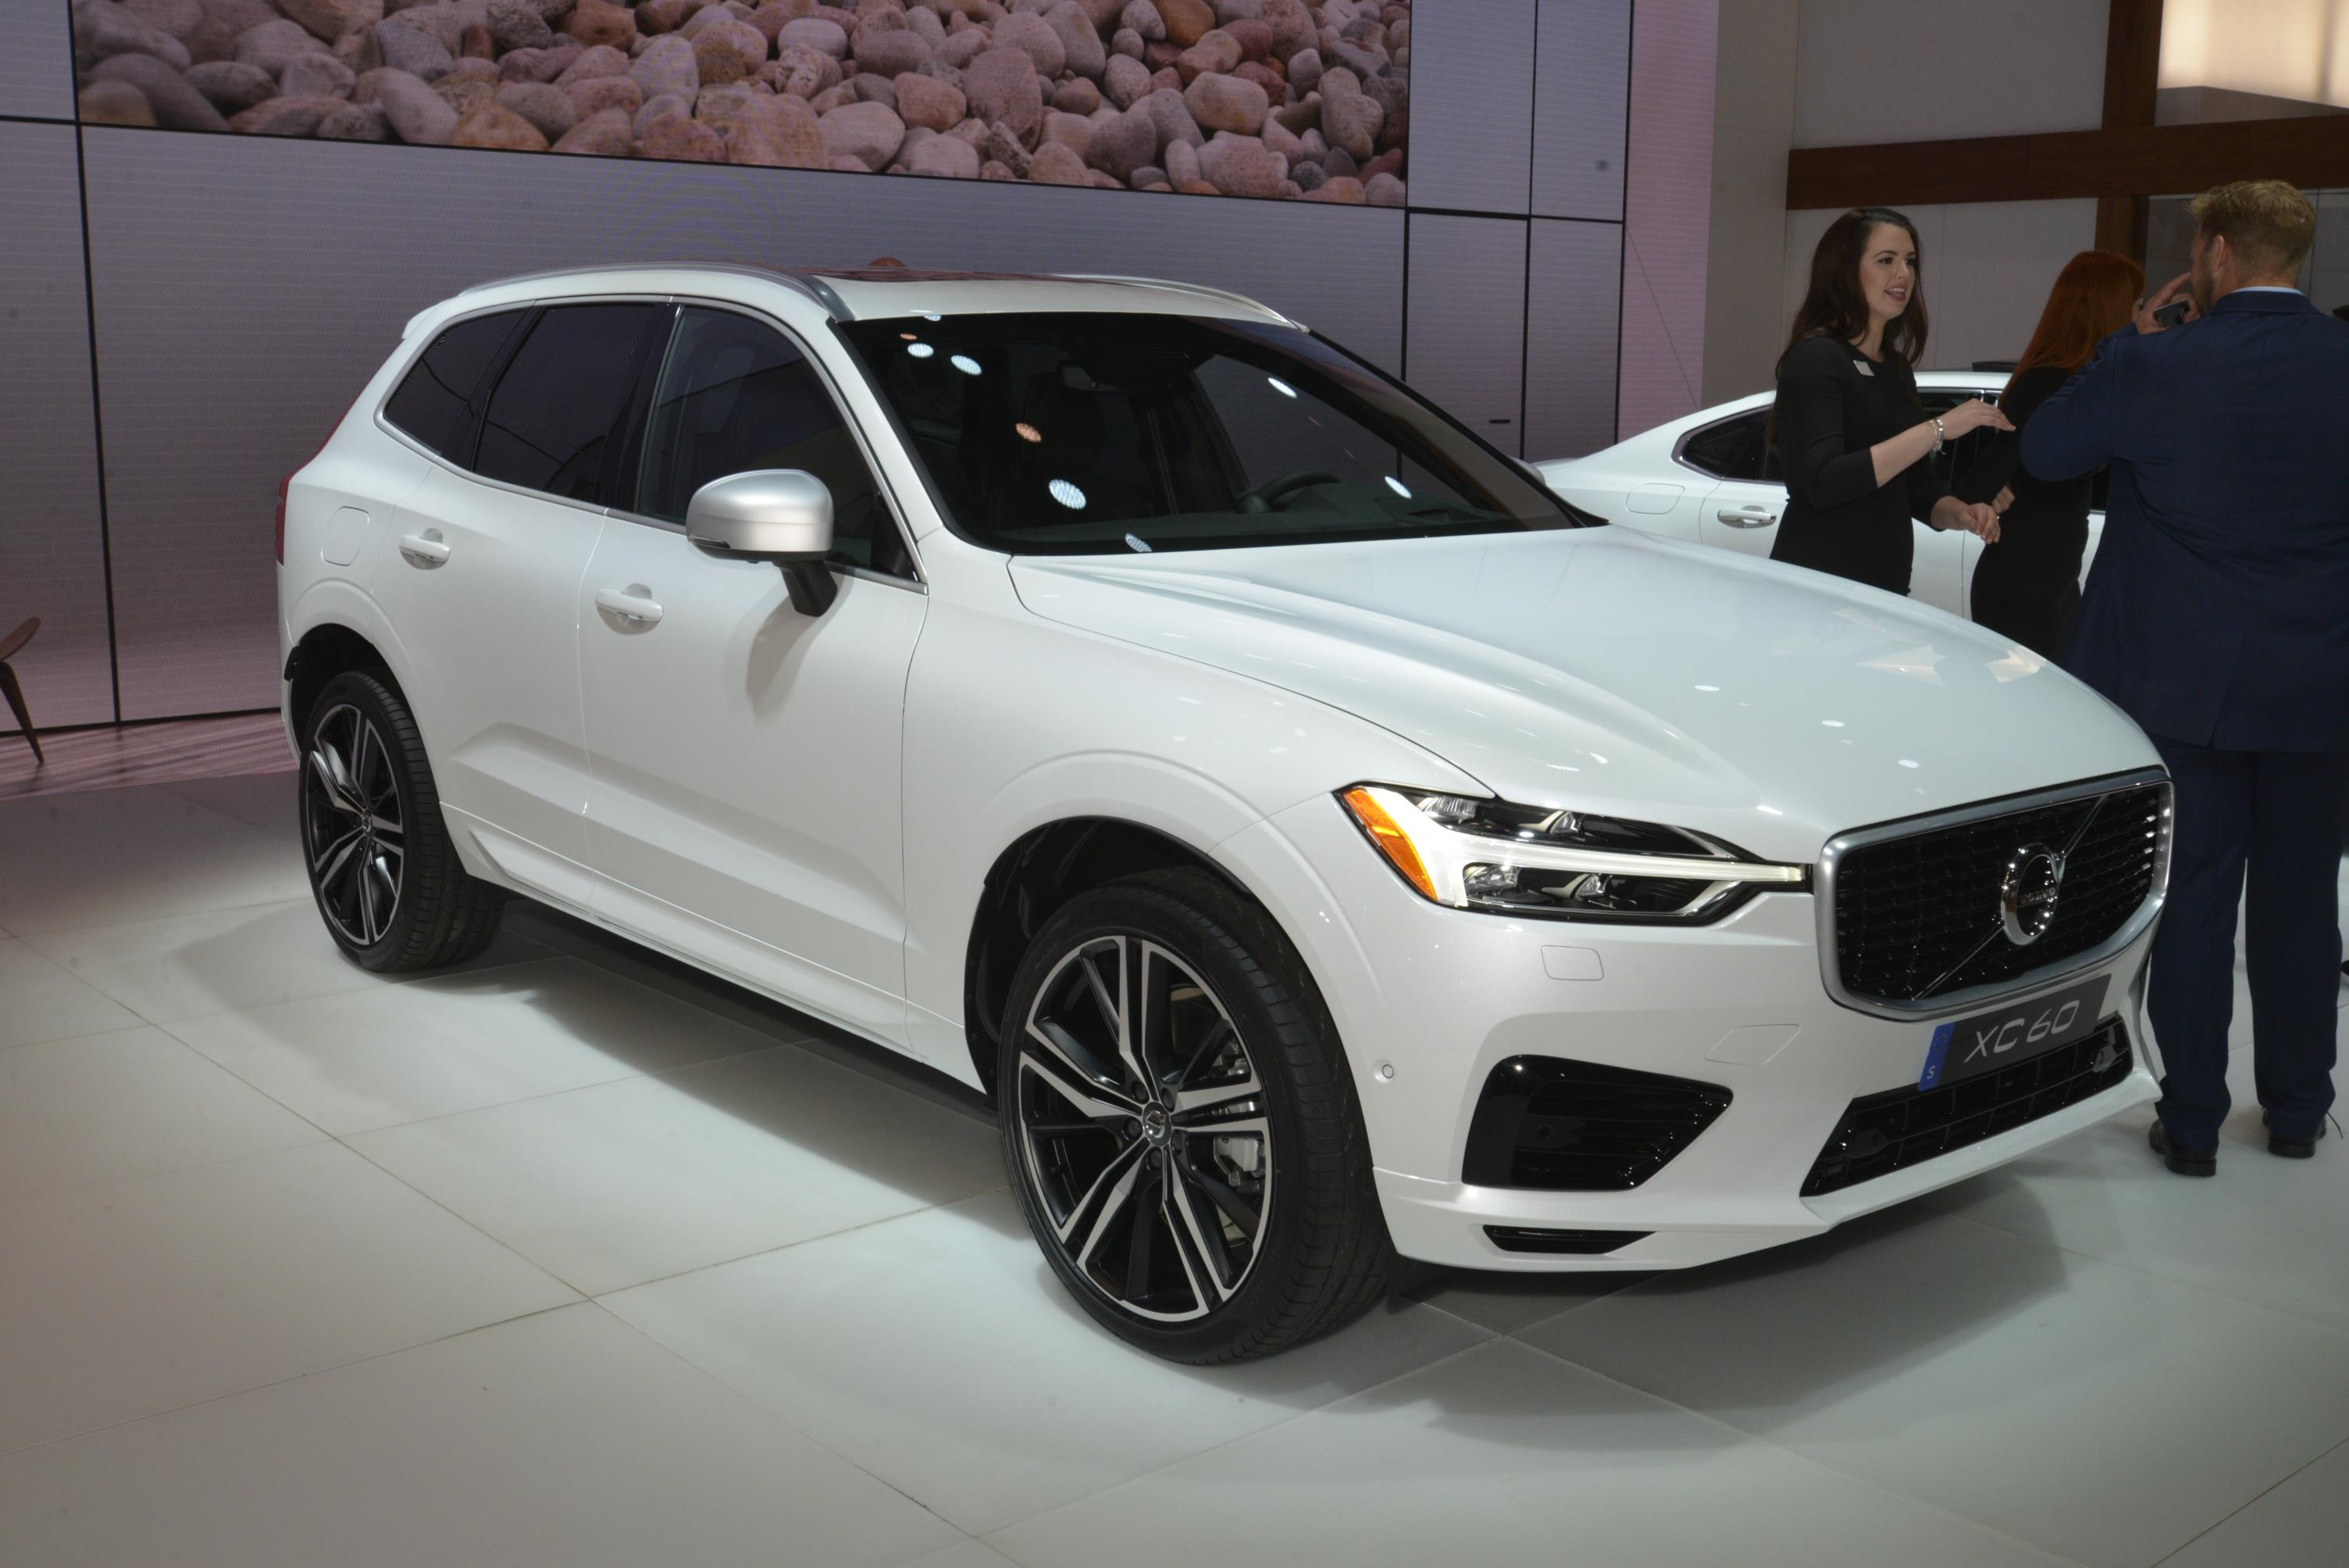 photos pricing price slides specs images rival and in volvo loading new below